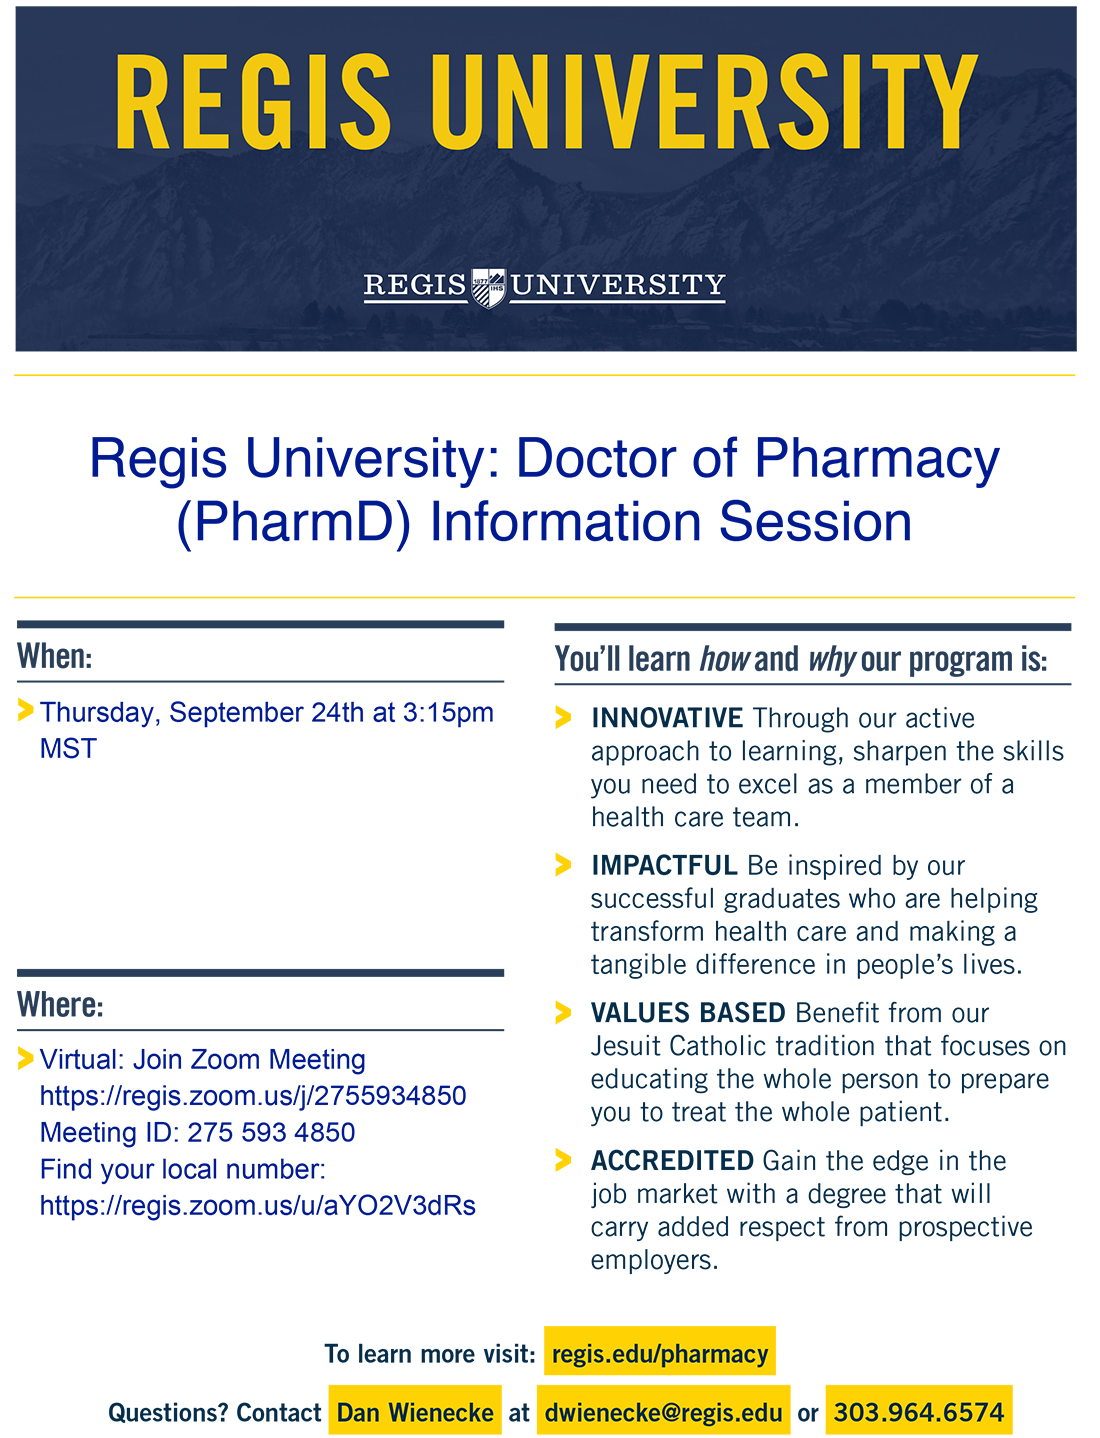 Flier_Regis-University_Pharmacy-Info-Session_9.24.2020